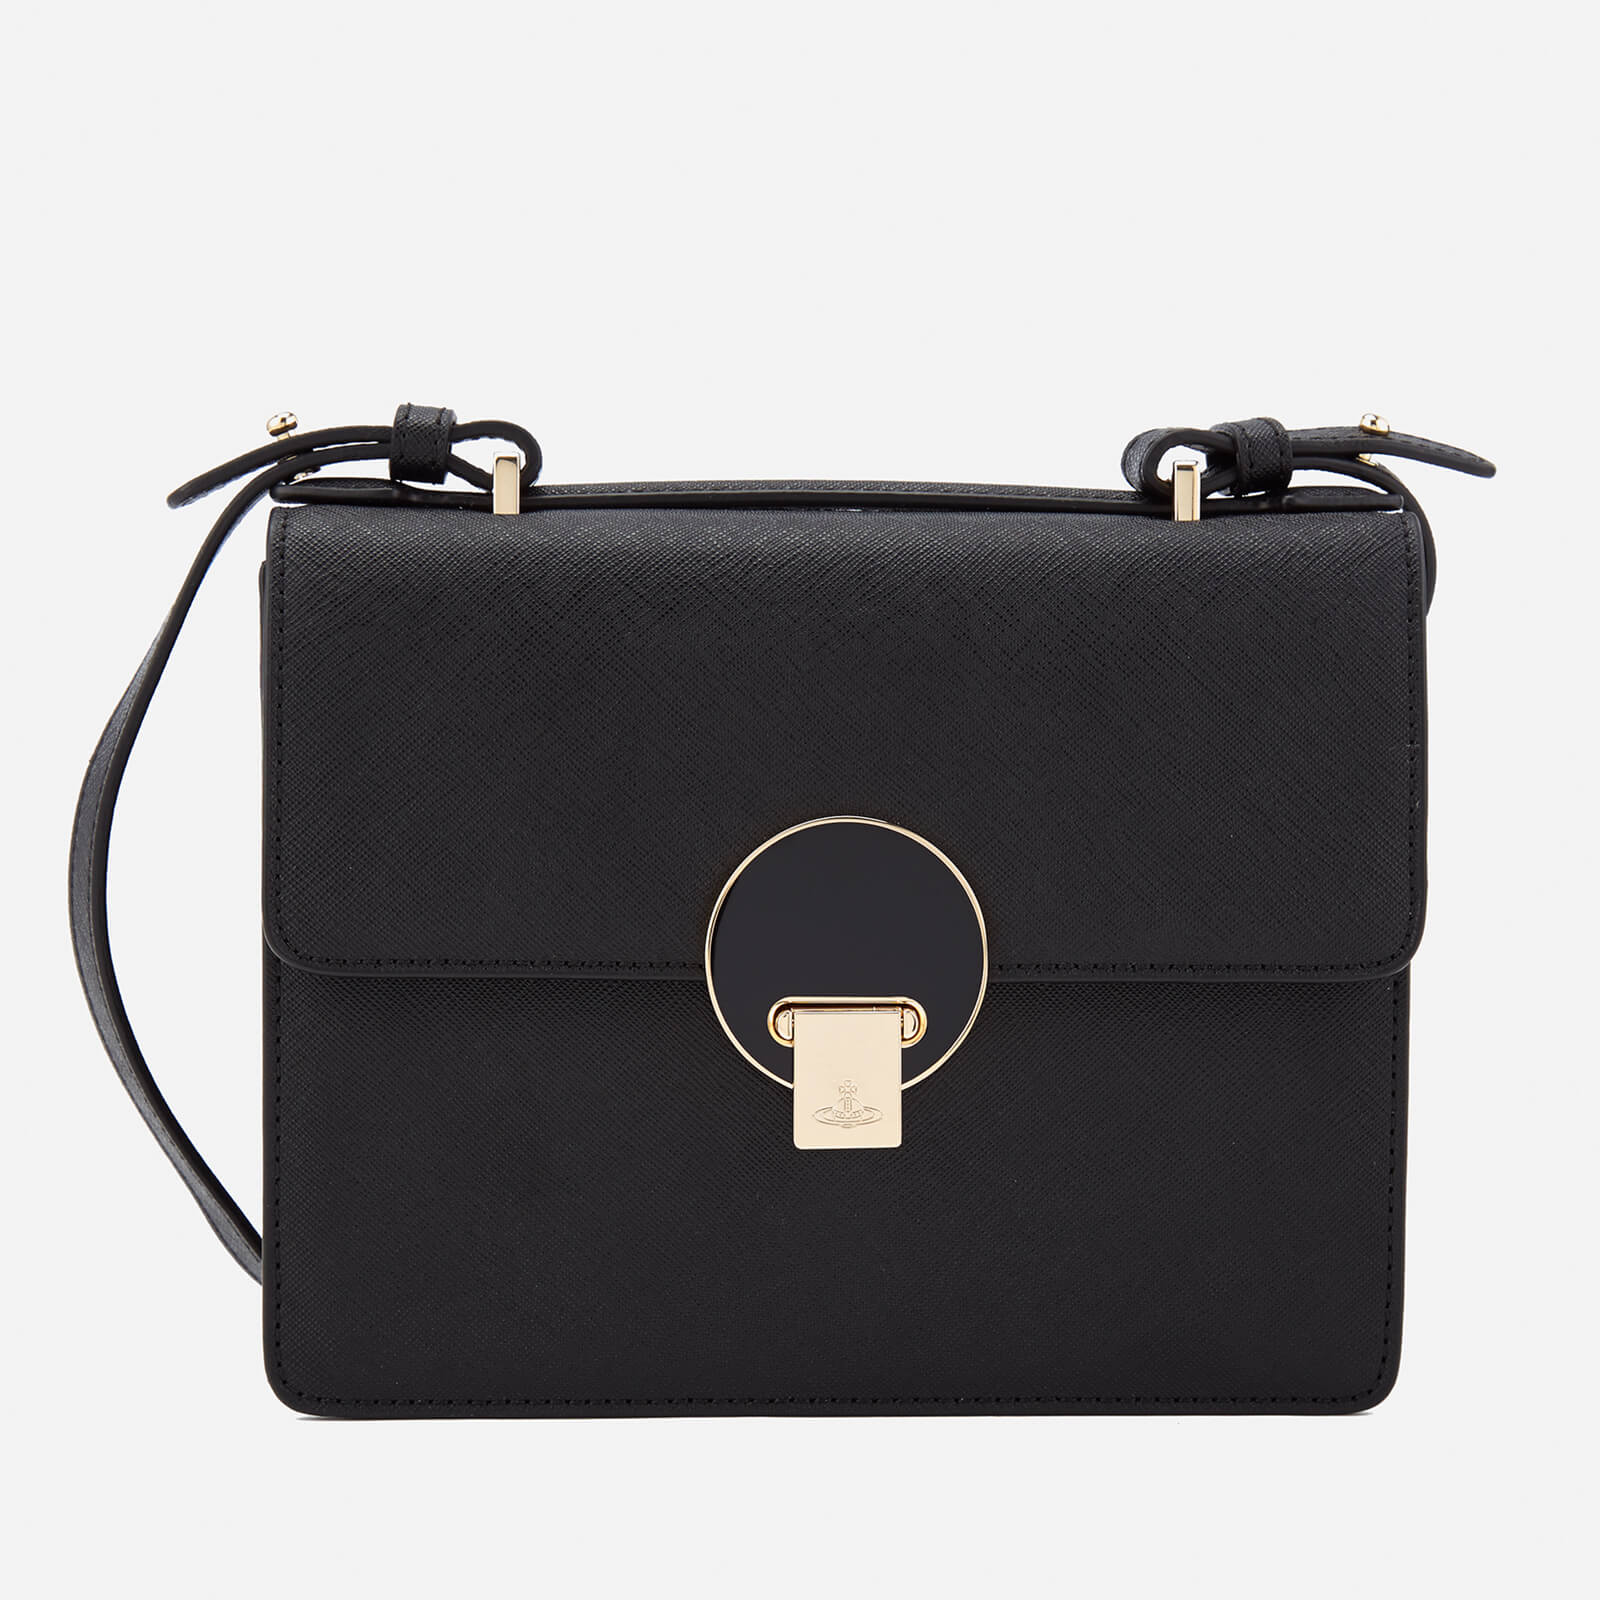 21d069fcc6d Vivienne Westwood Women's Opio Saffiano Small Shoulder Bag - Black - Free  UK Delivery over £50